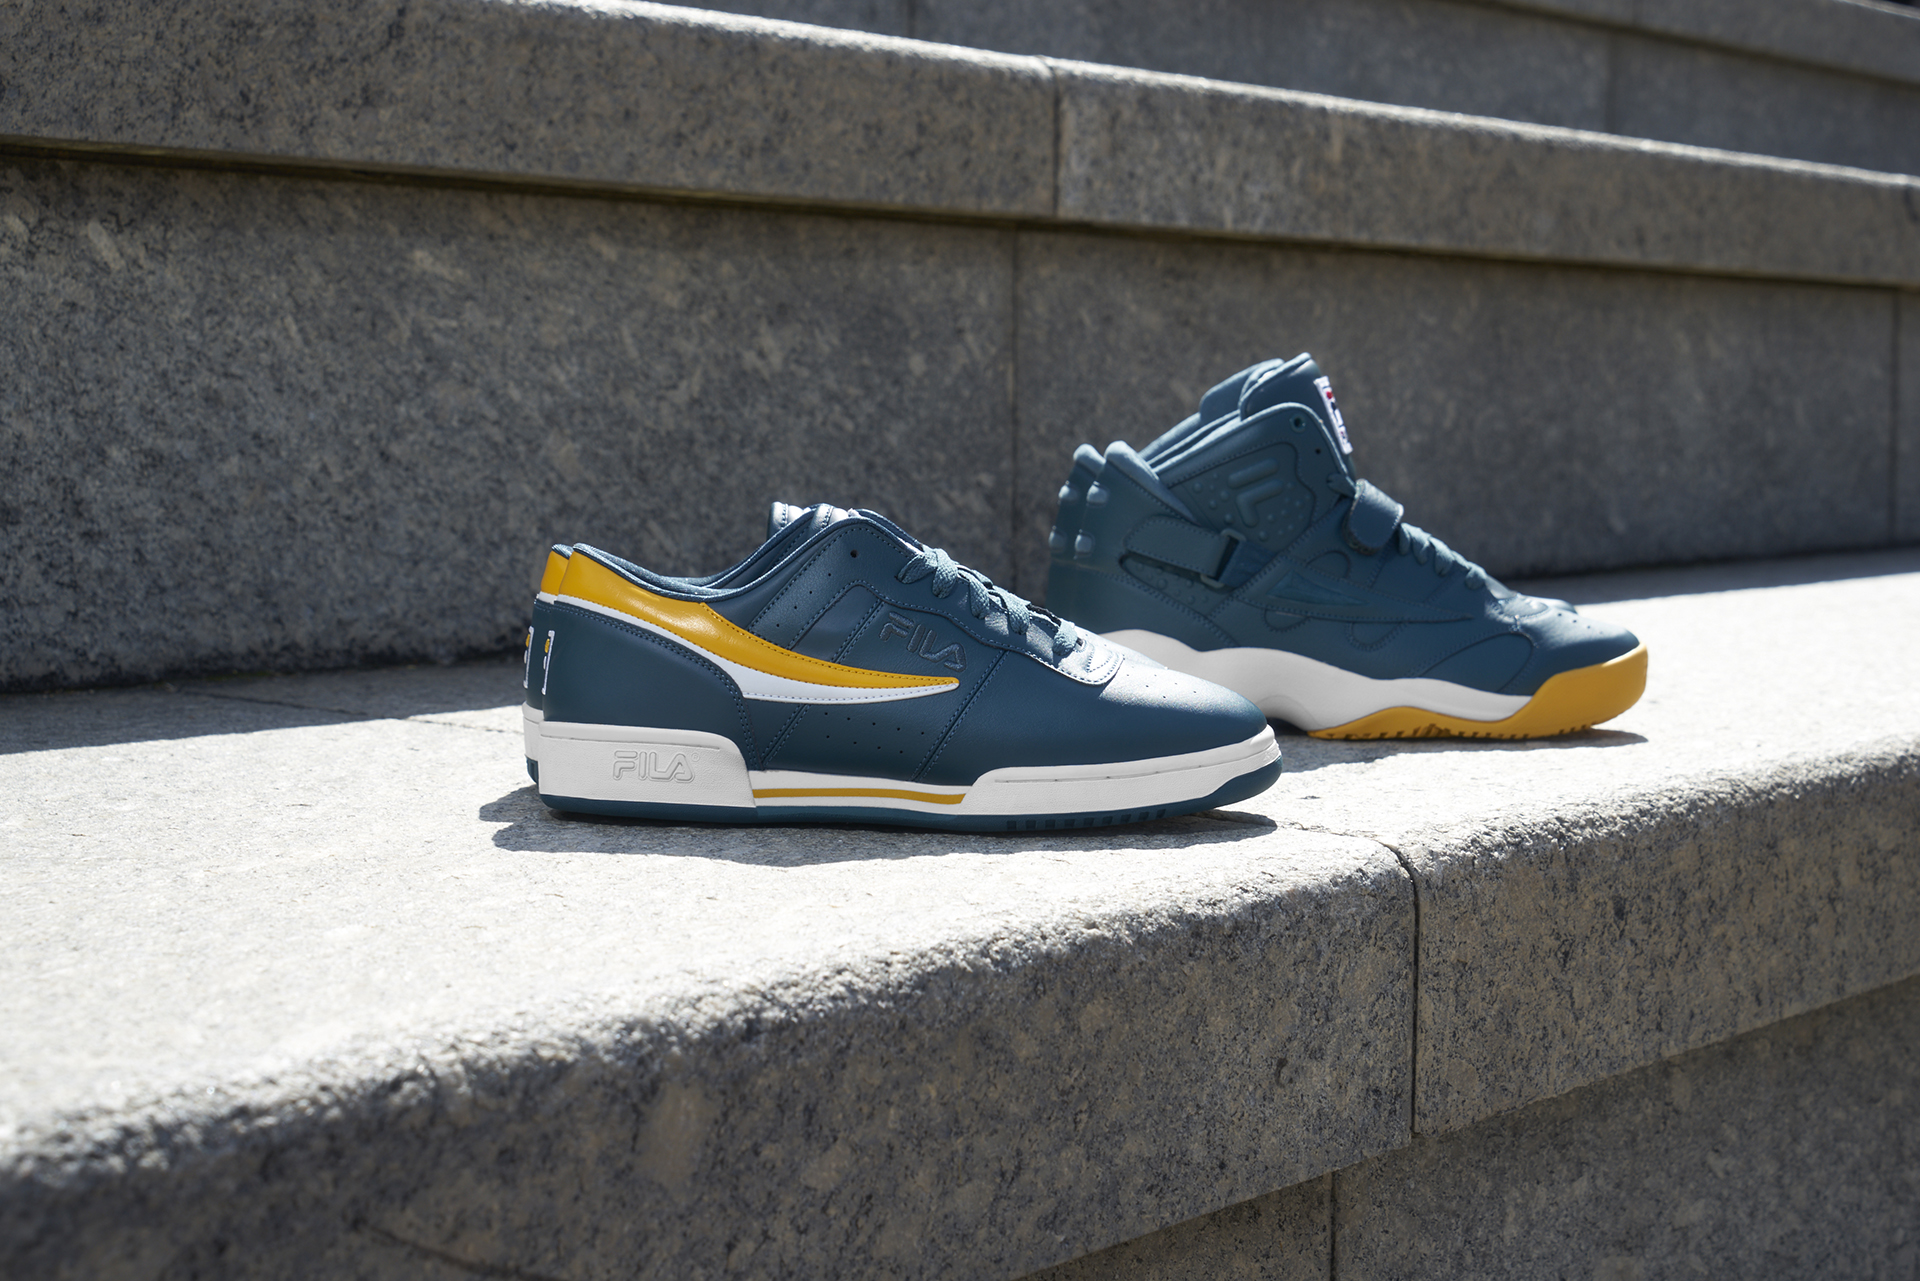 Fila original fitness soaring summer pack 1